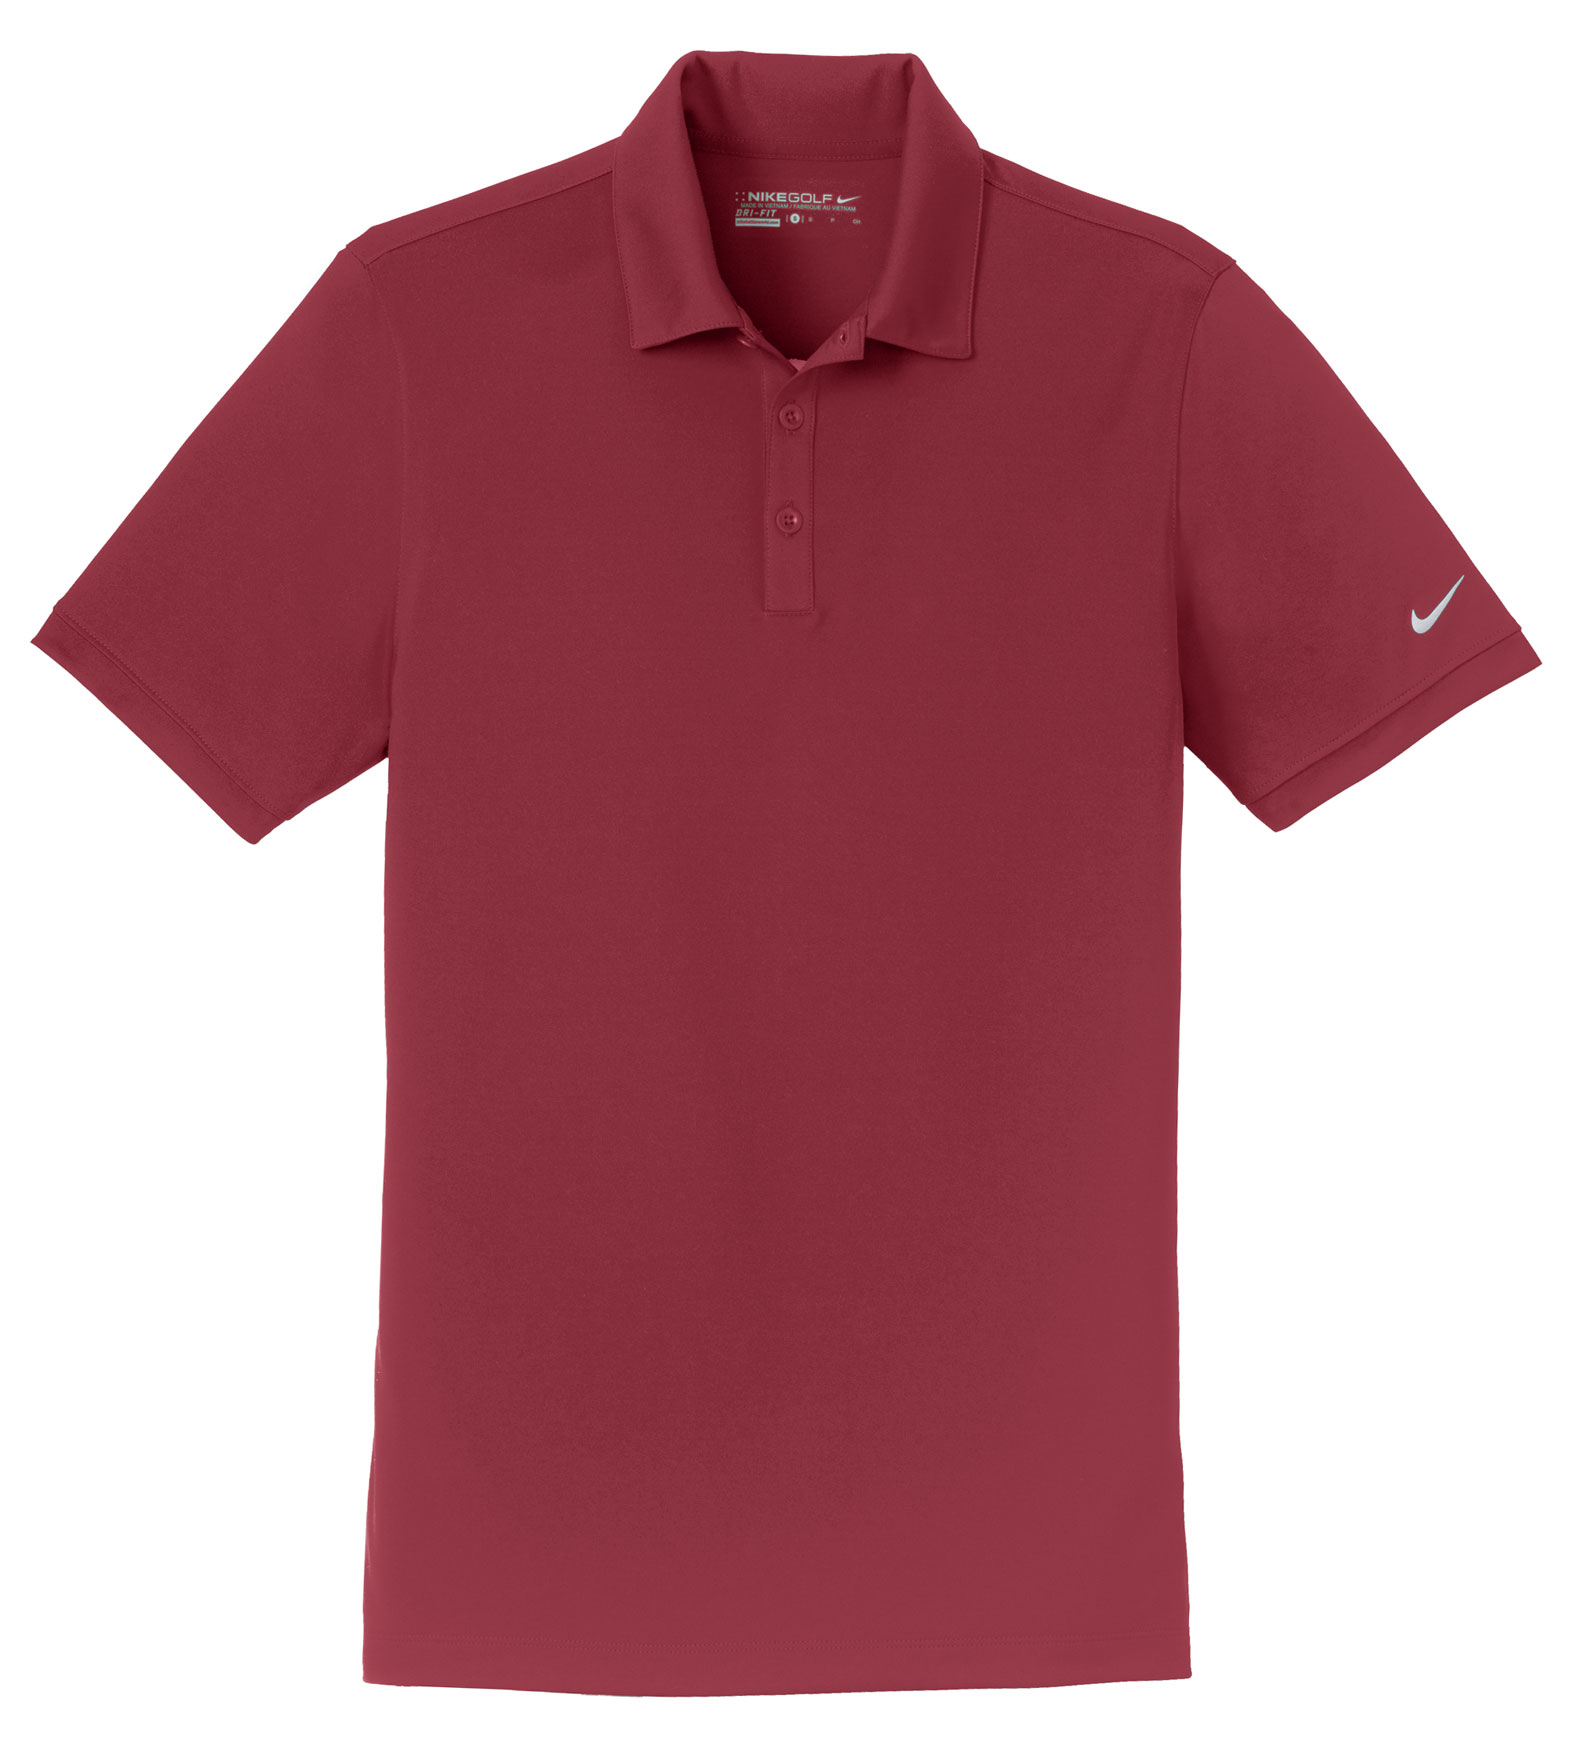 Nike Golf Dri-FIT Mens Smooth Performance Polo